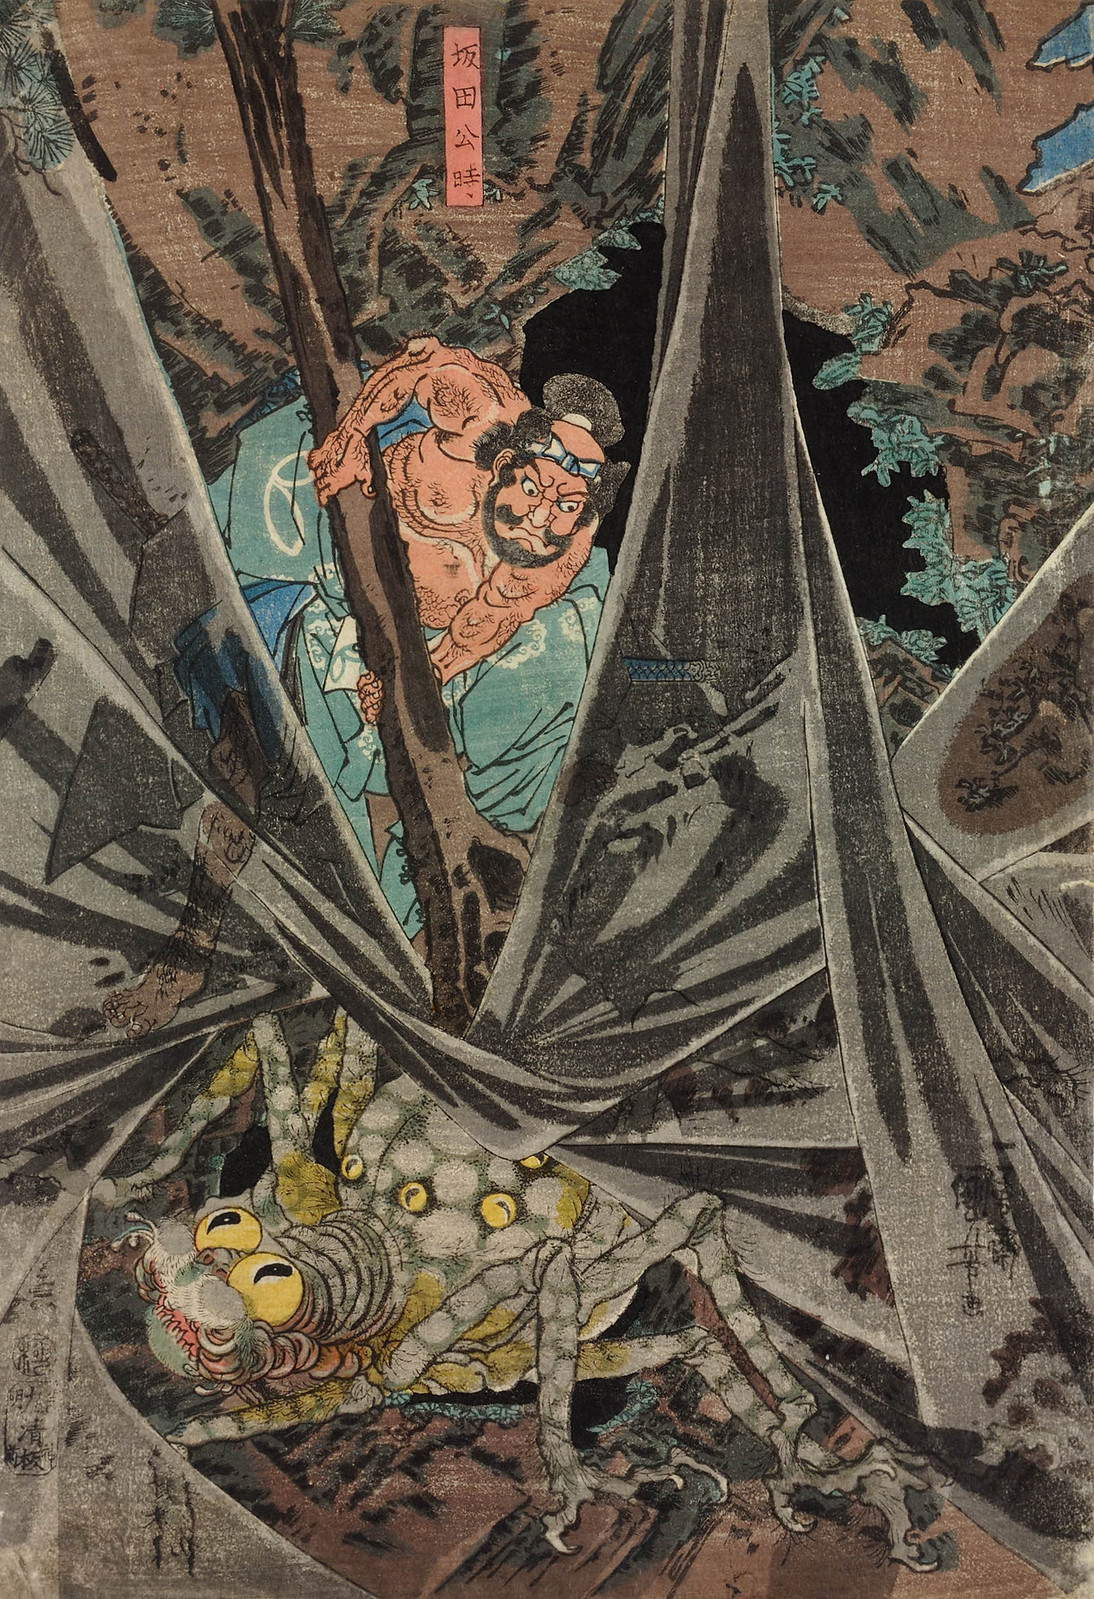 Utagawa Kuniyoshi - Minamoto no Yorimitsu no shitenno tsuchigumo taiji no zu, (The Earth Spider slain by Minamoto no Yorimitsu's retainers) 18th c (middle panel)